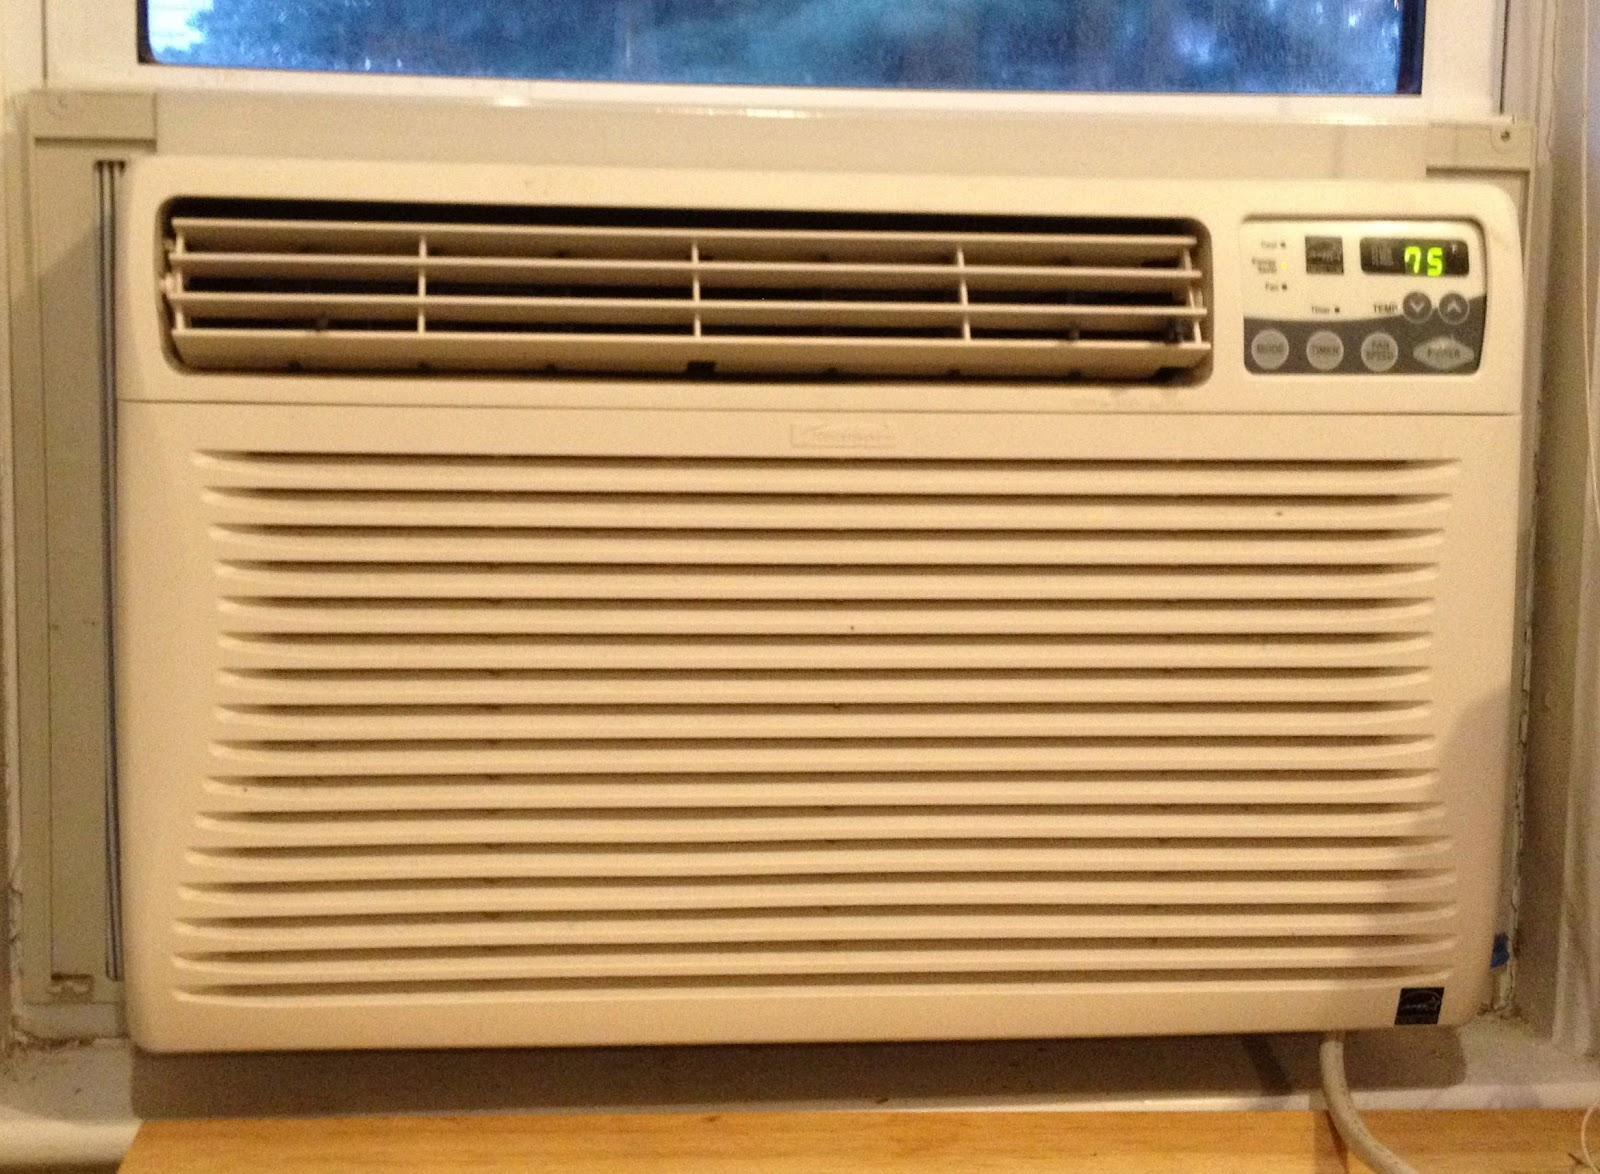 What Is Important When Buying A New Room Air Conditioner